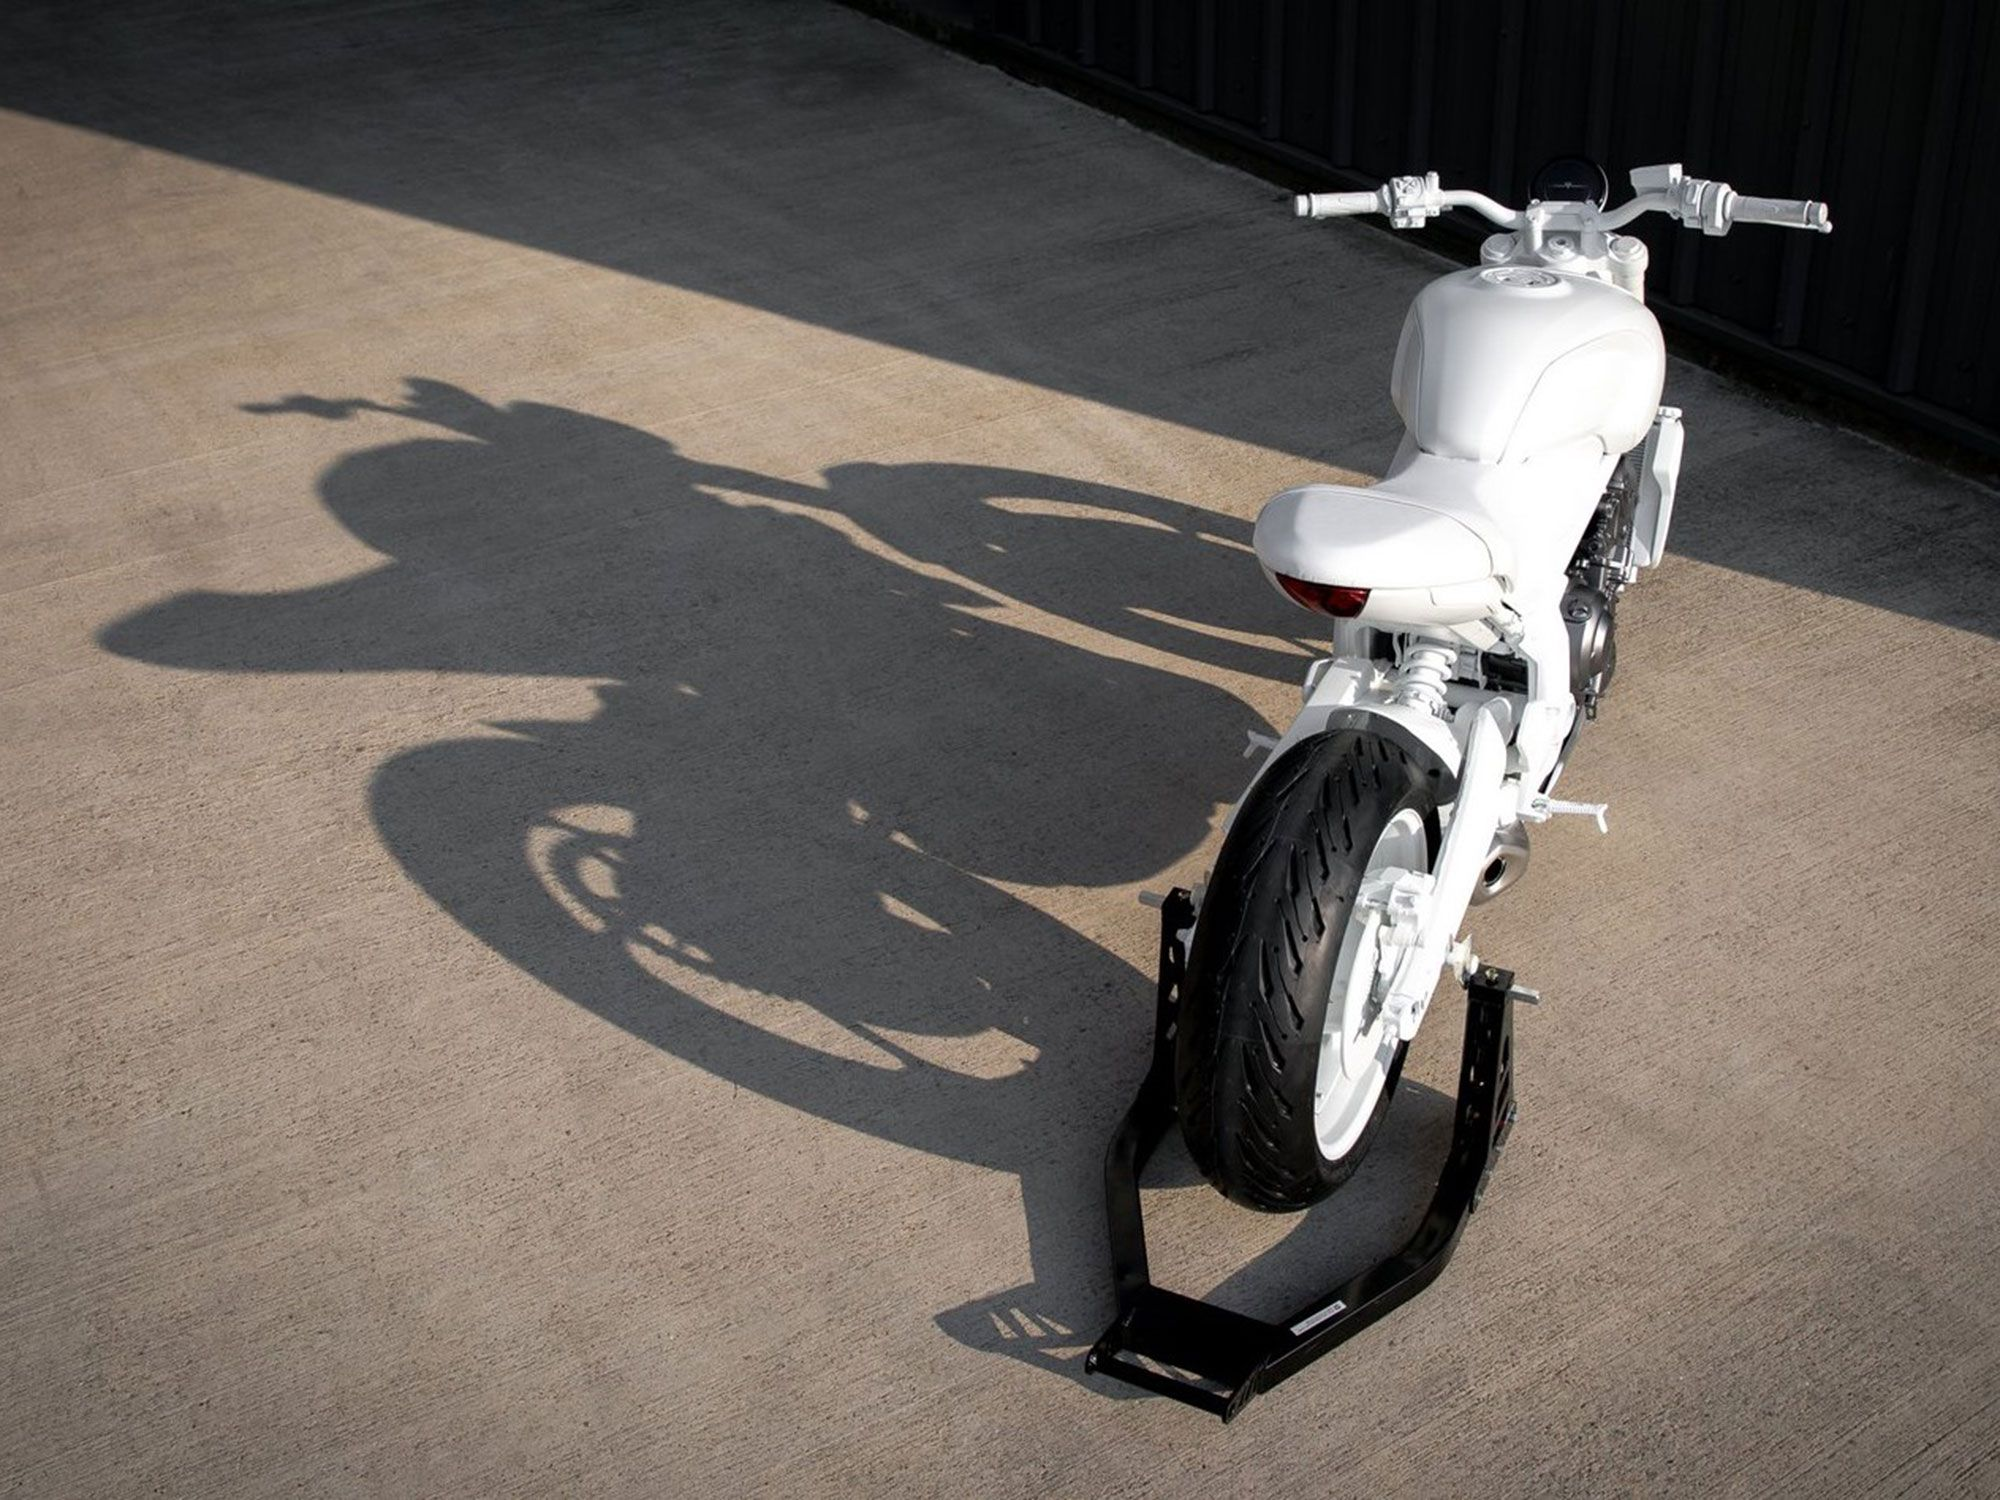 The overall proportions hint at an accessible, upright riding position and a slimmed-down stance.